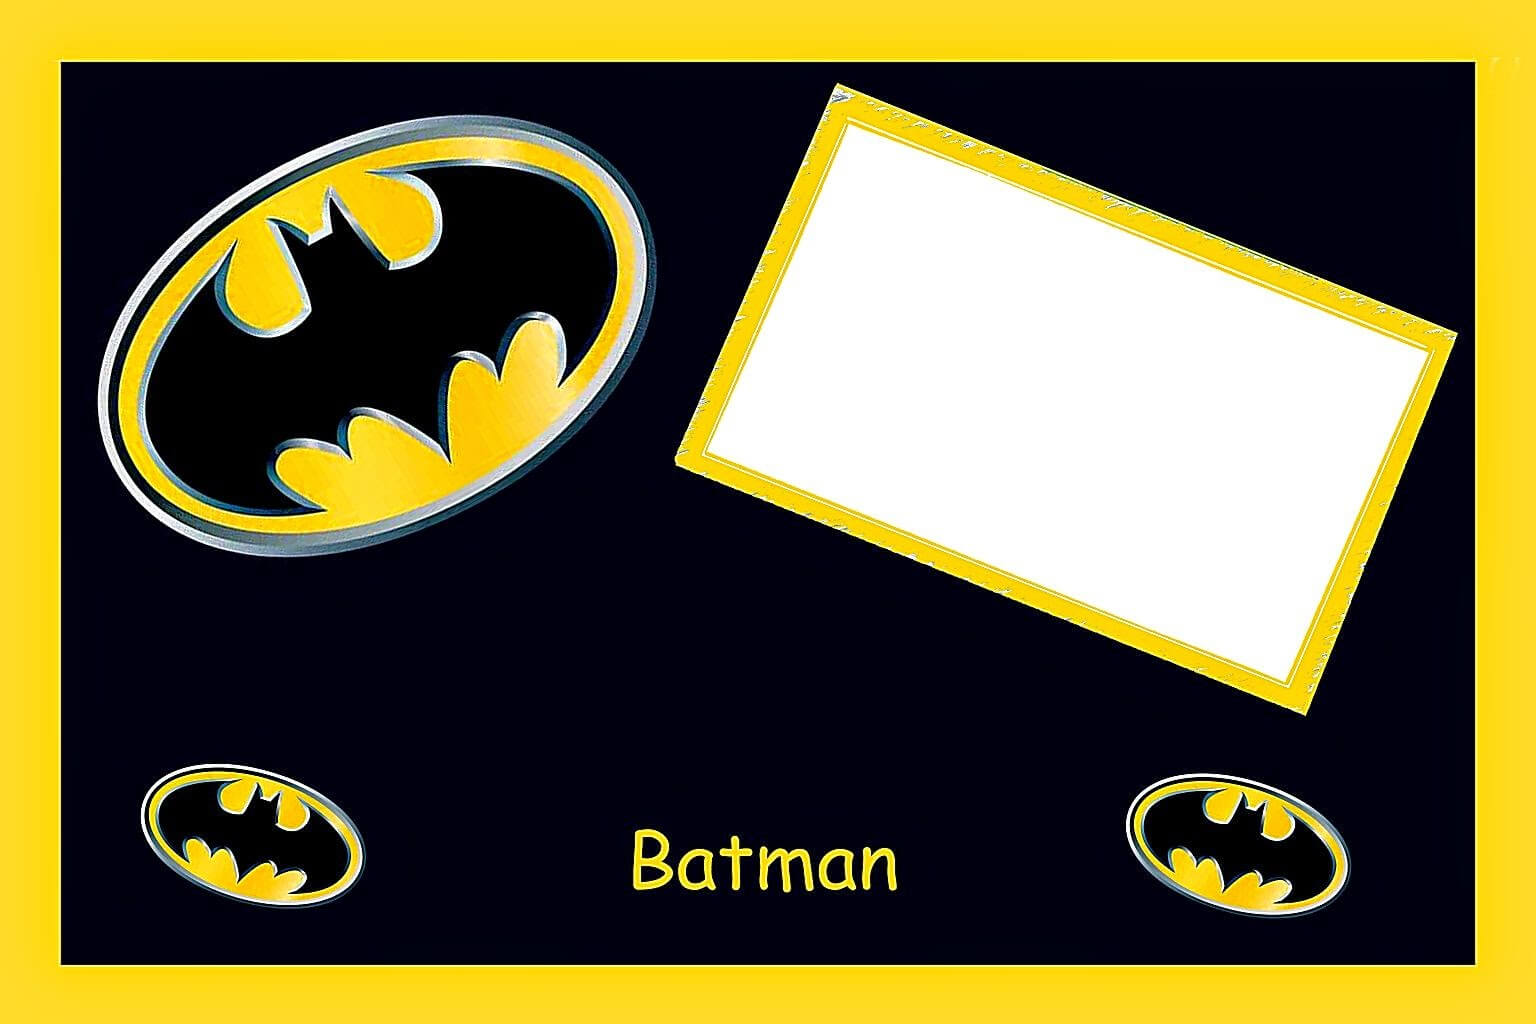 Batman Birthday: Free Printable Cards Or Invitations. - Oh With Regard To Batman Birthday Card Template